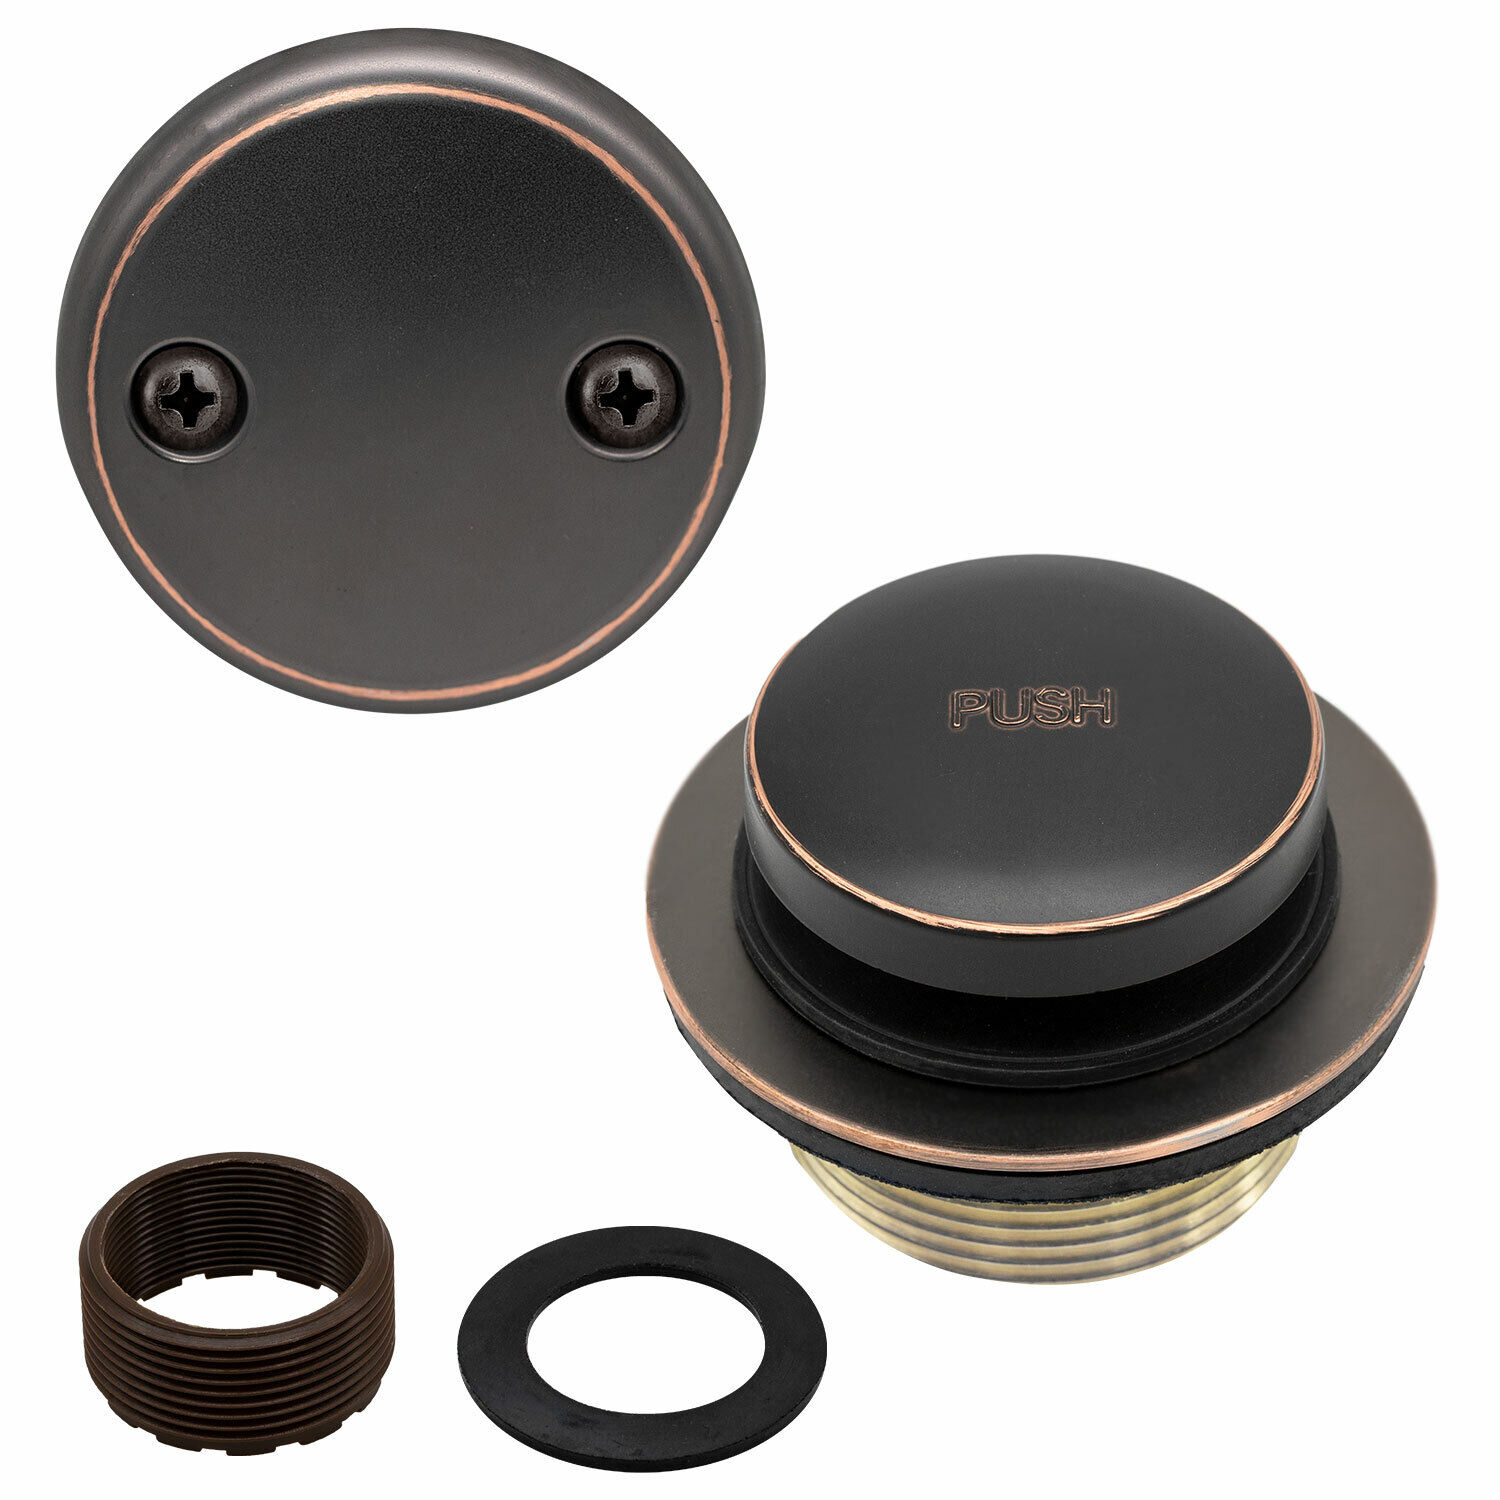 Toe Touch Tub Drain Replacement Bathtub Overflow Cover Kit, Oil Rubbed Bronze Bath